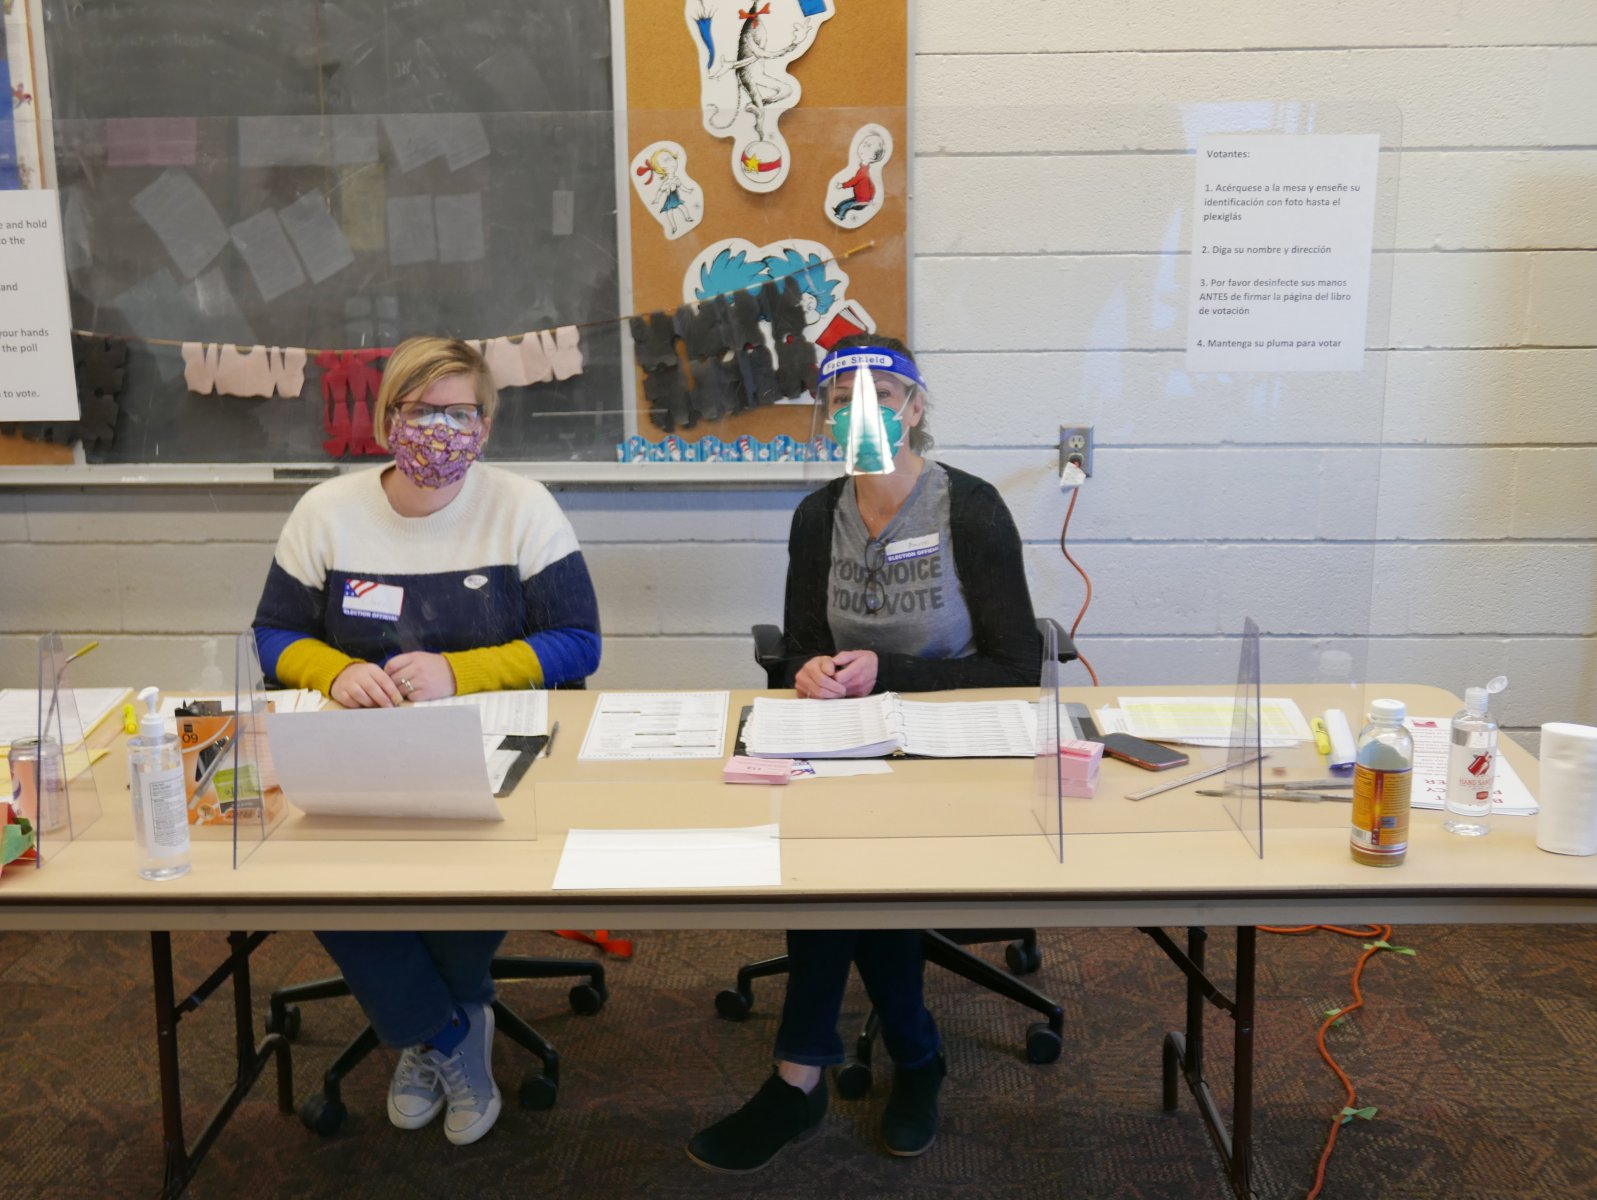 Clare Kuehnen, left, Maureen Goldblatt, right, at Atkinson Branch Library